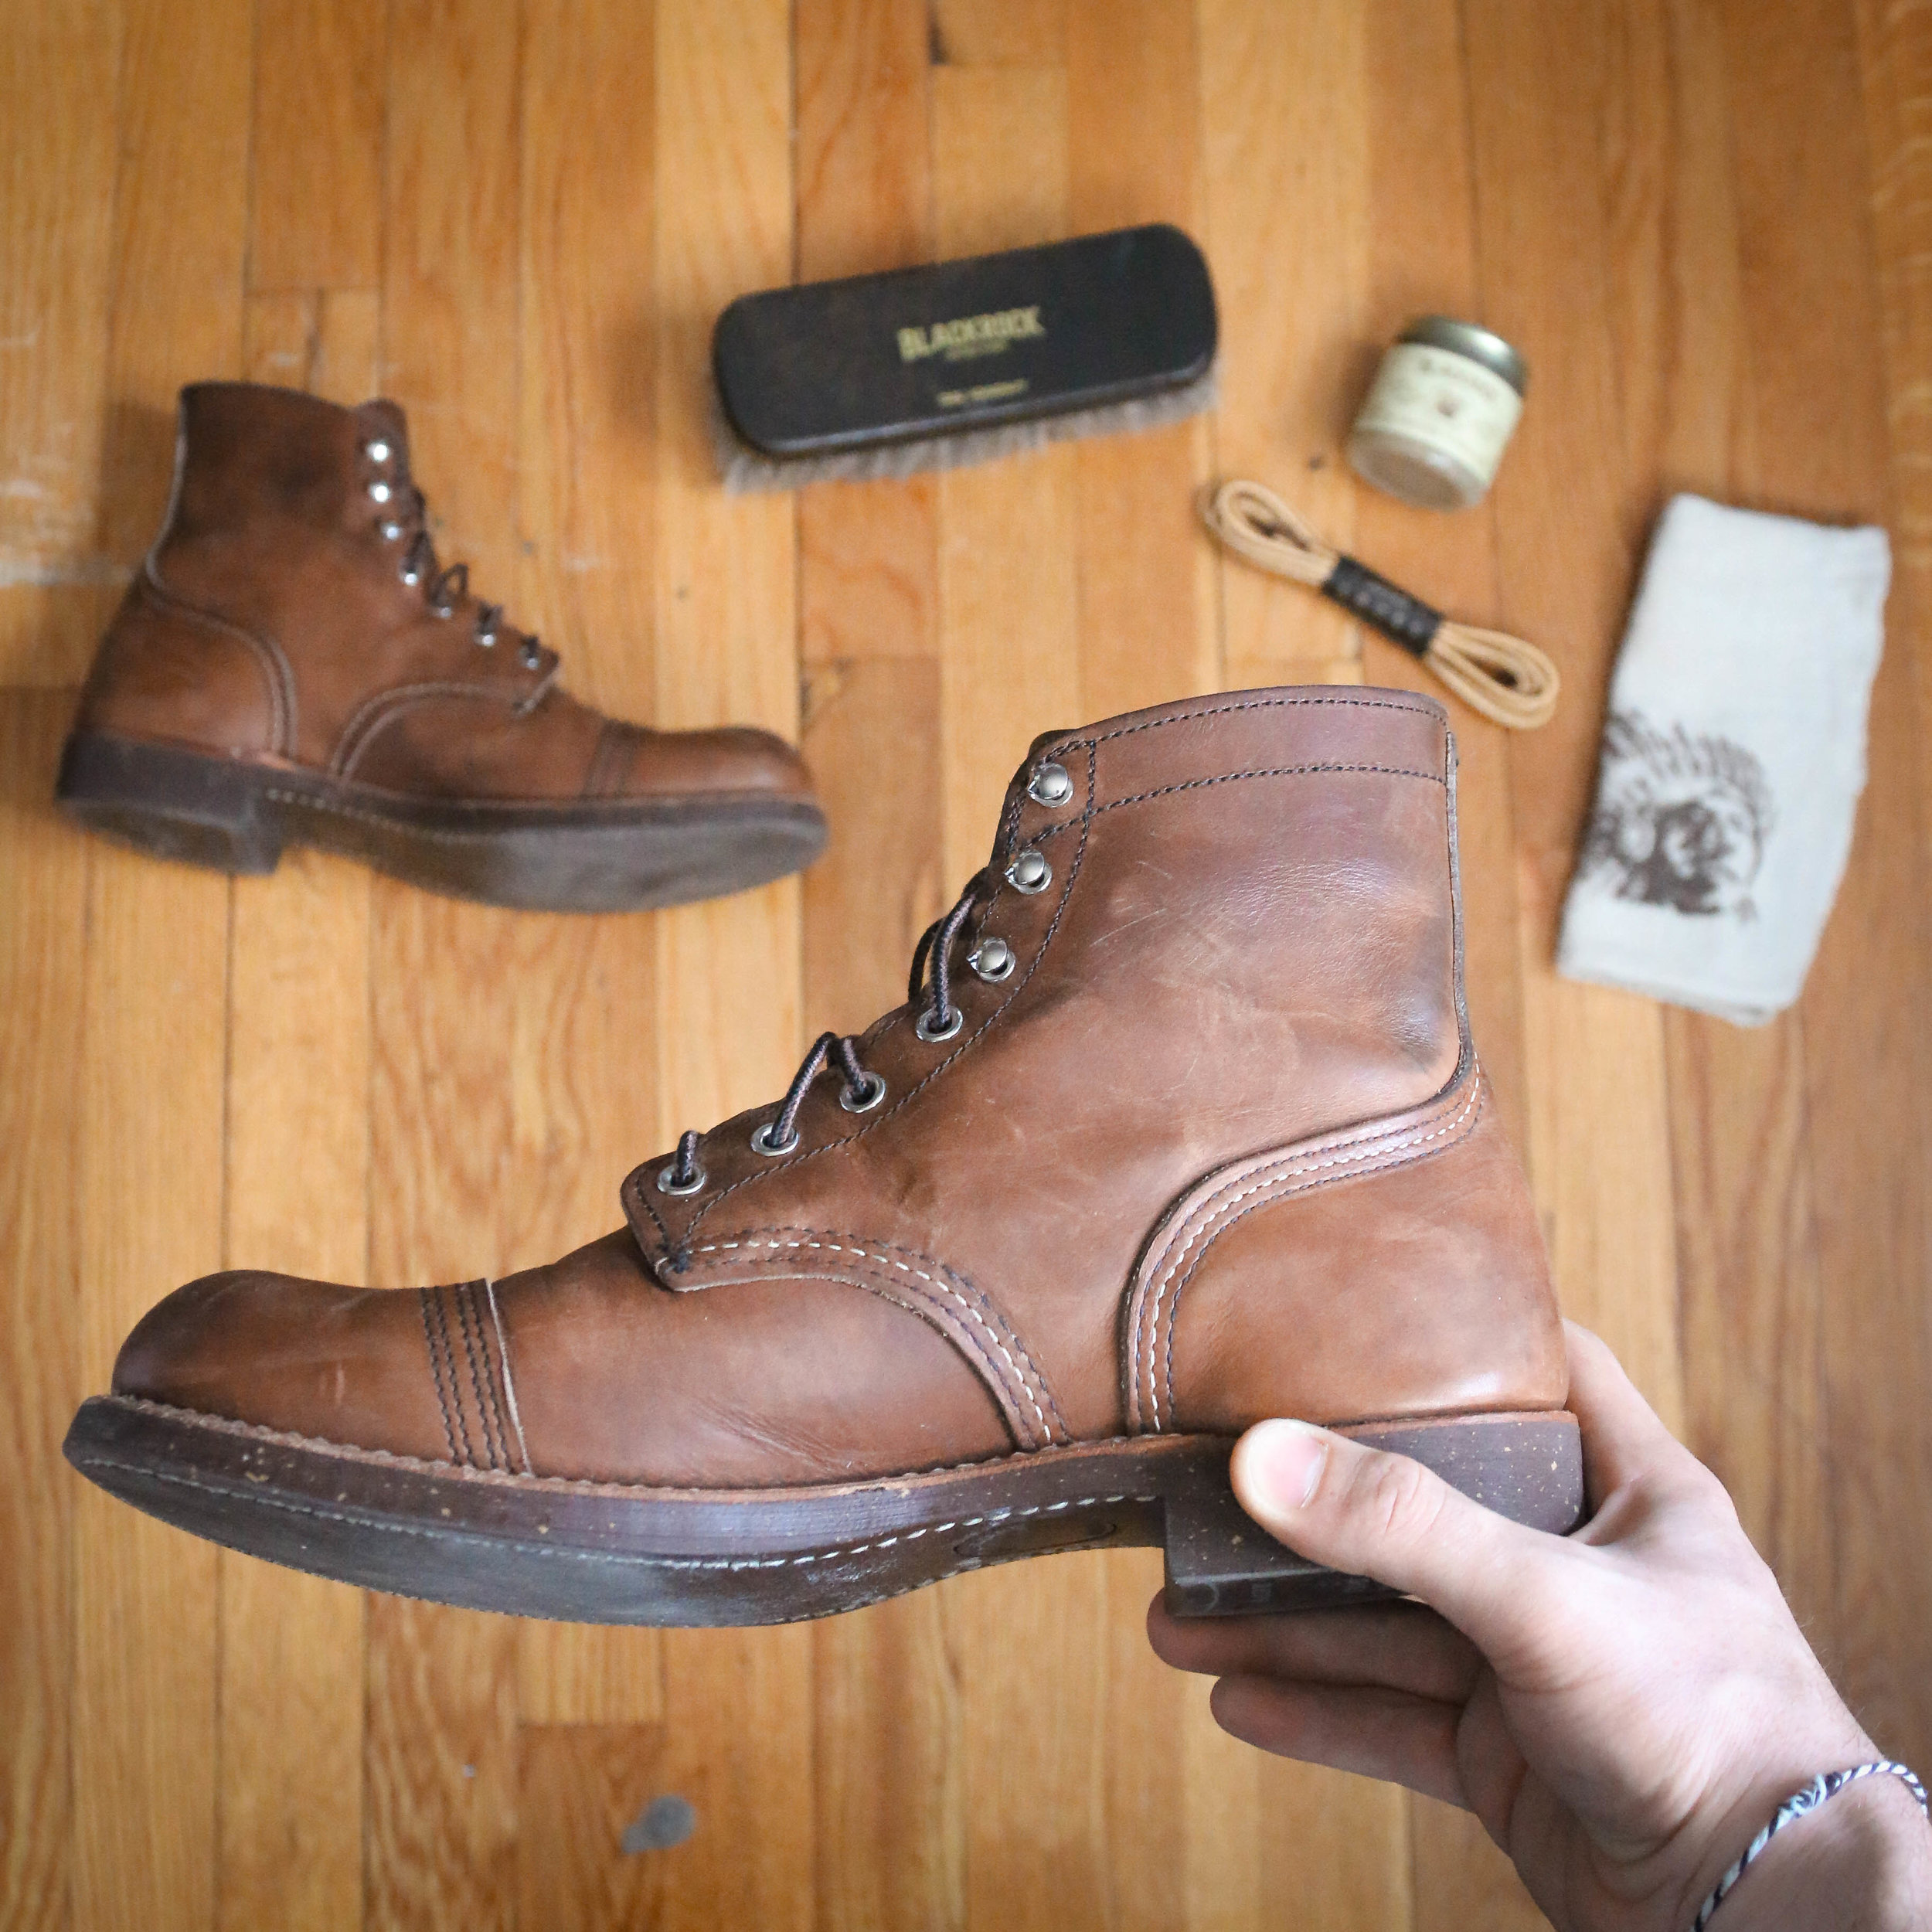 Iron Rangers with a care kit from Blackrock Leather